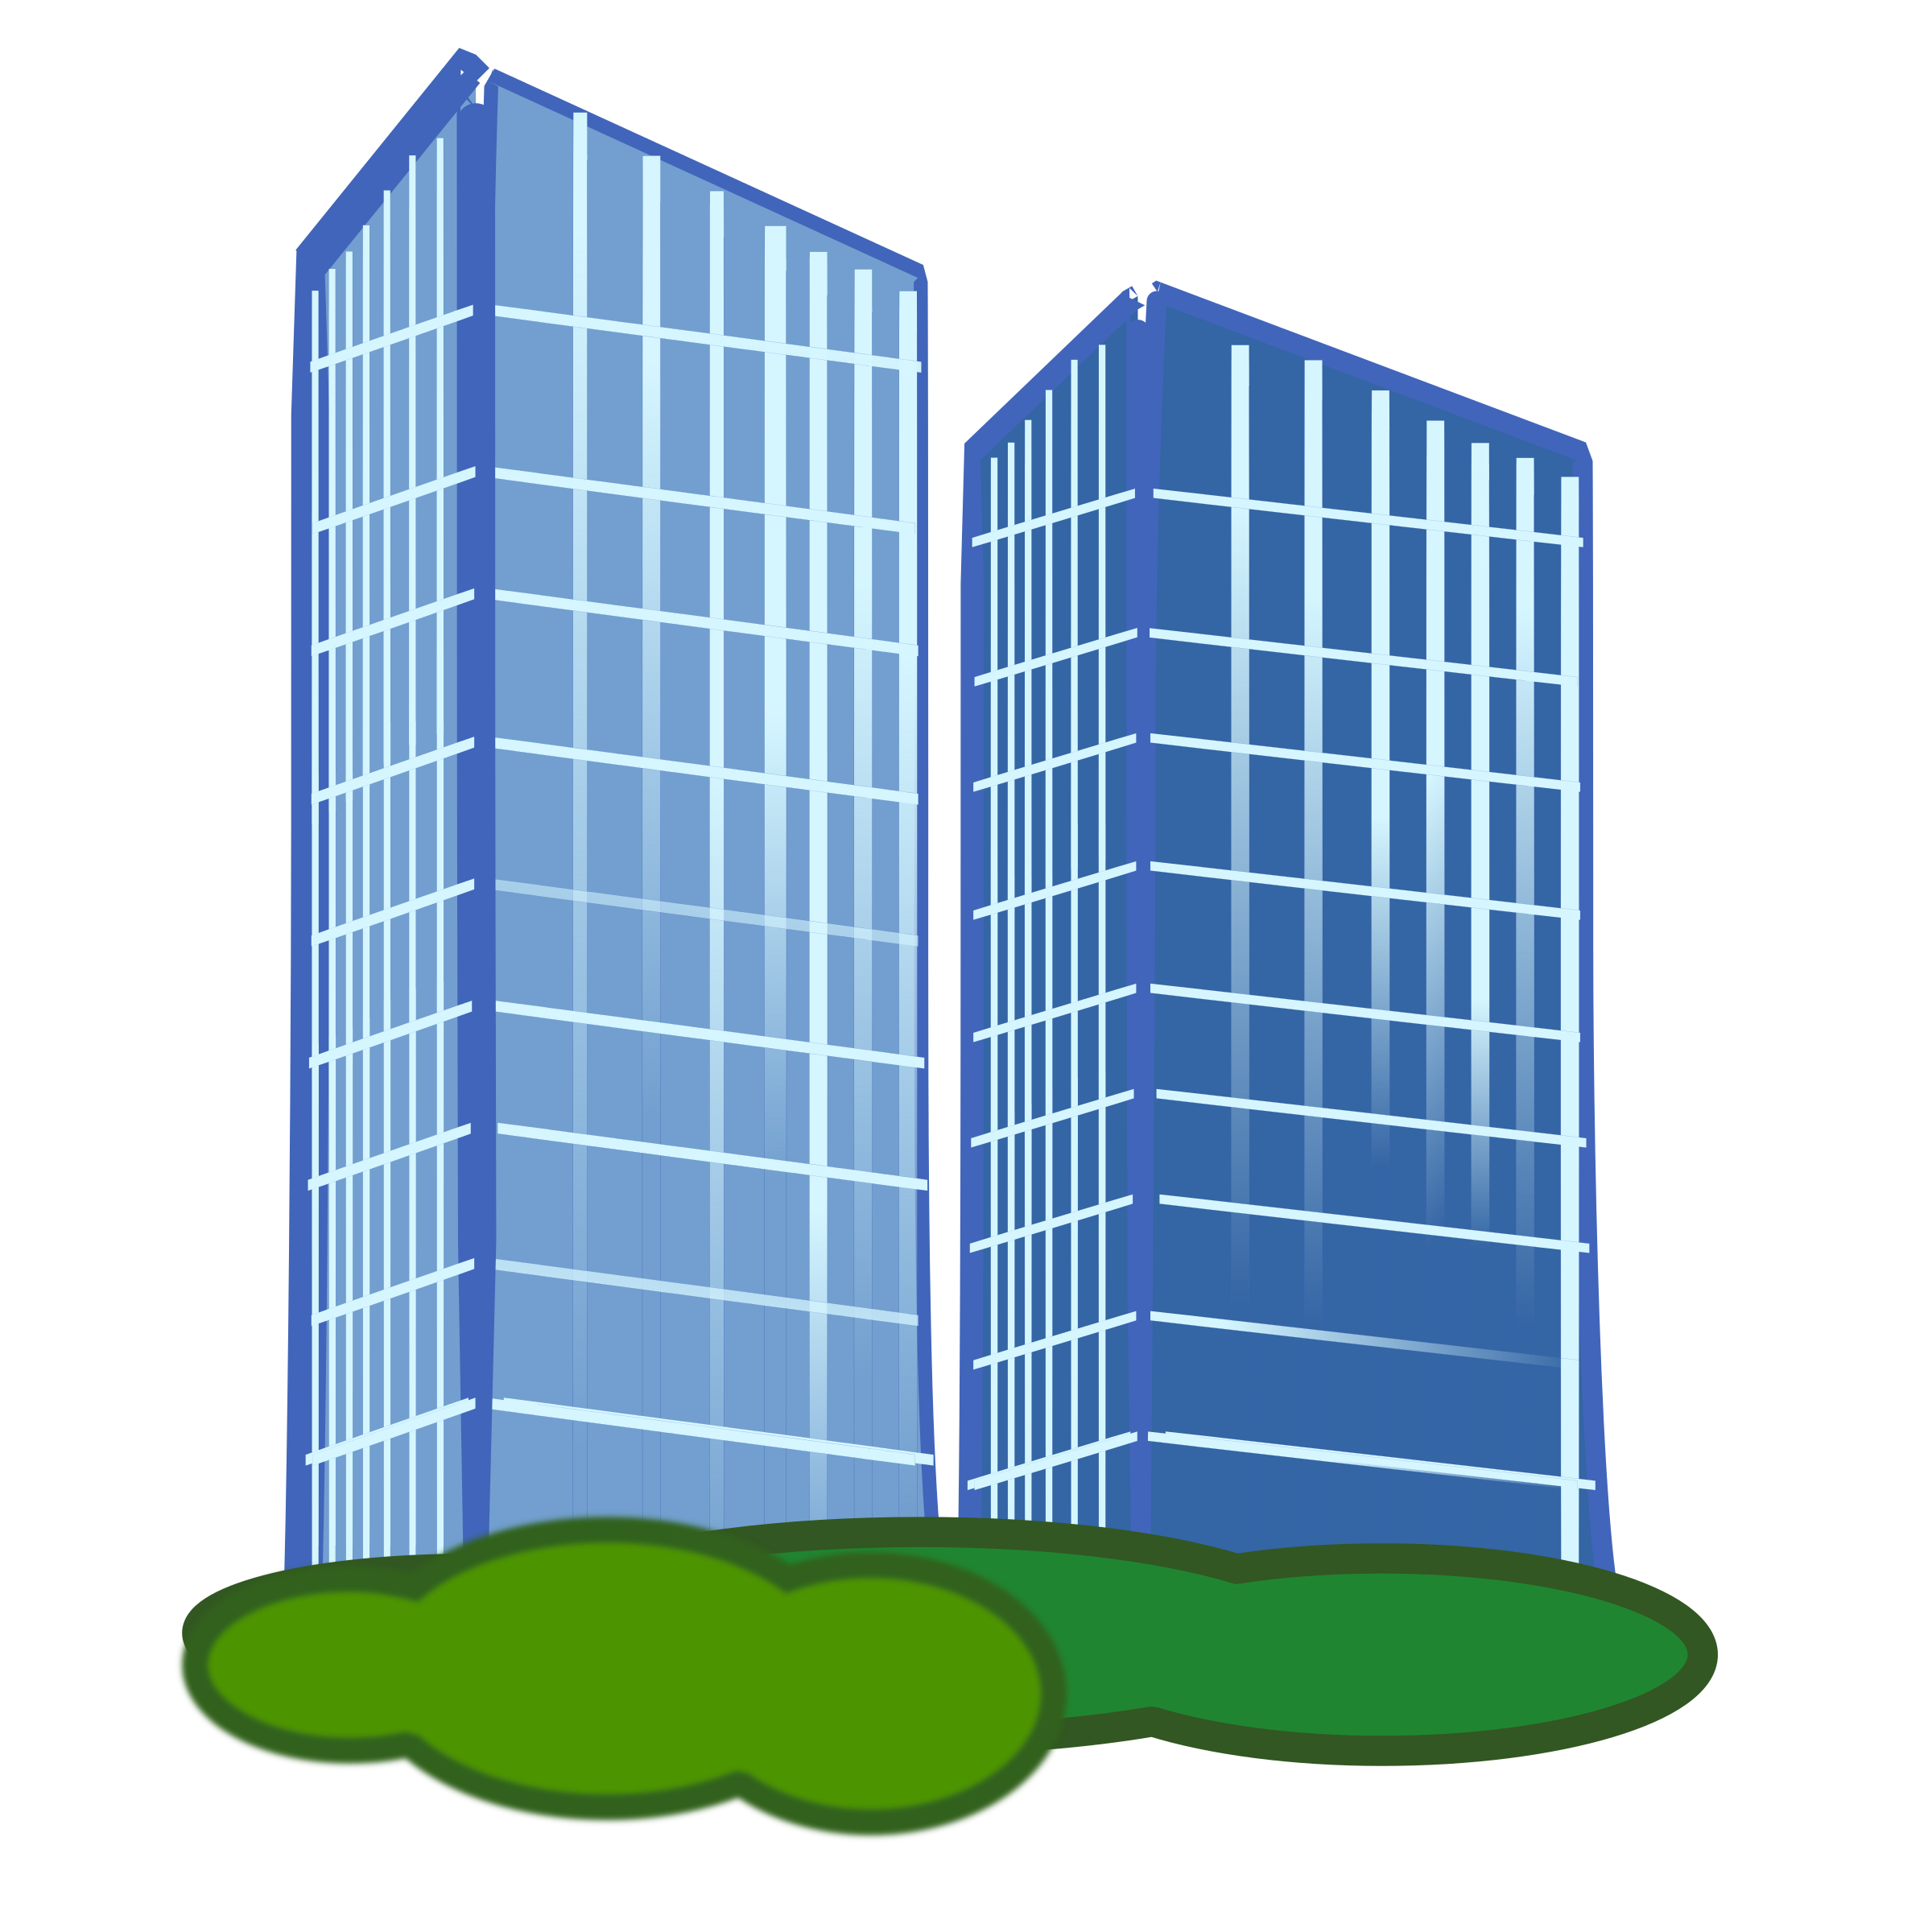 Icon x big image. Apartment clipart tower block